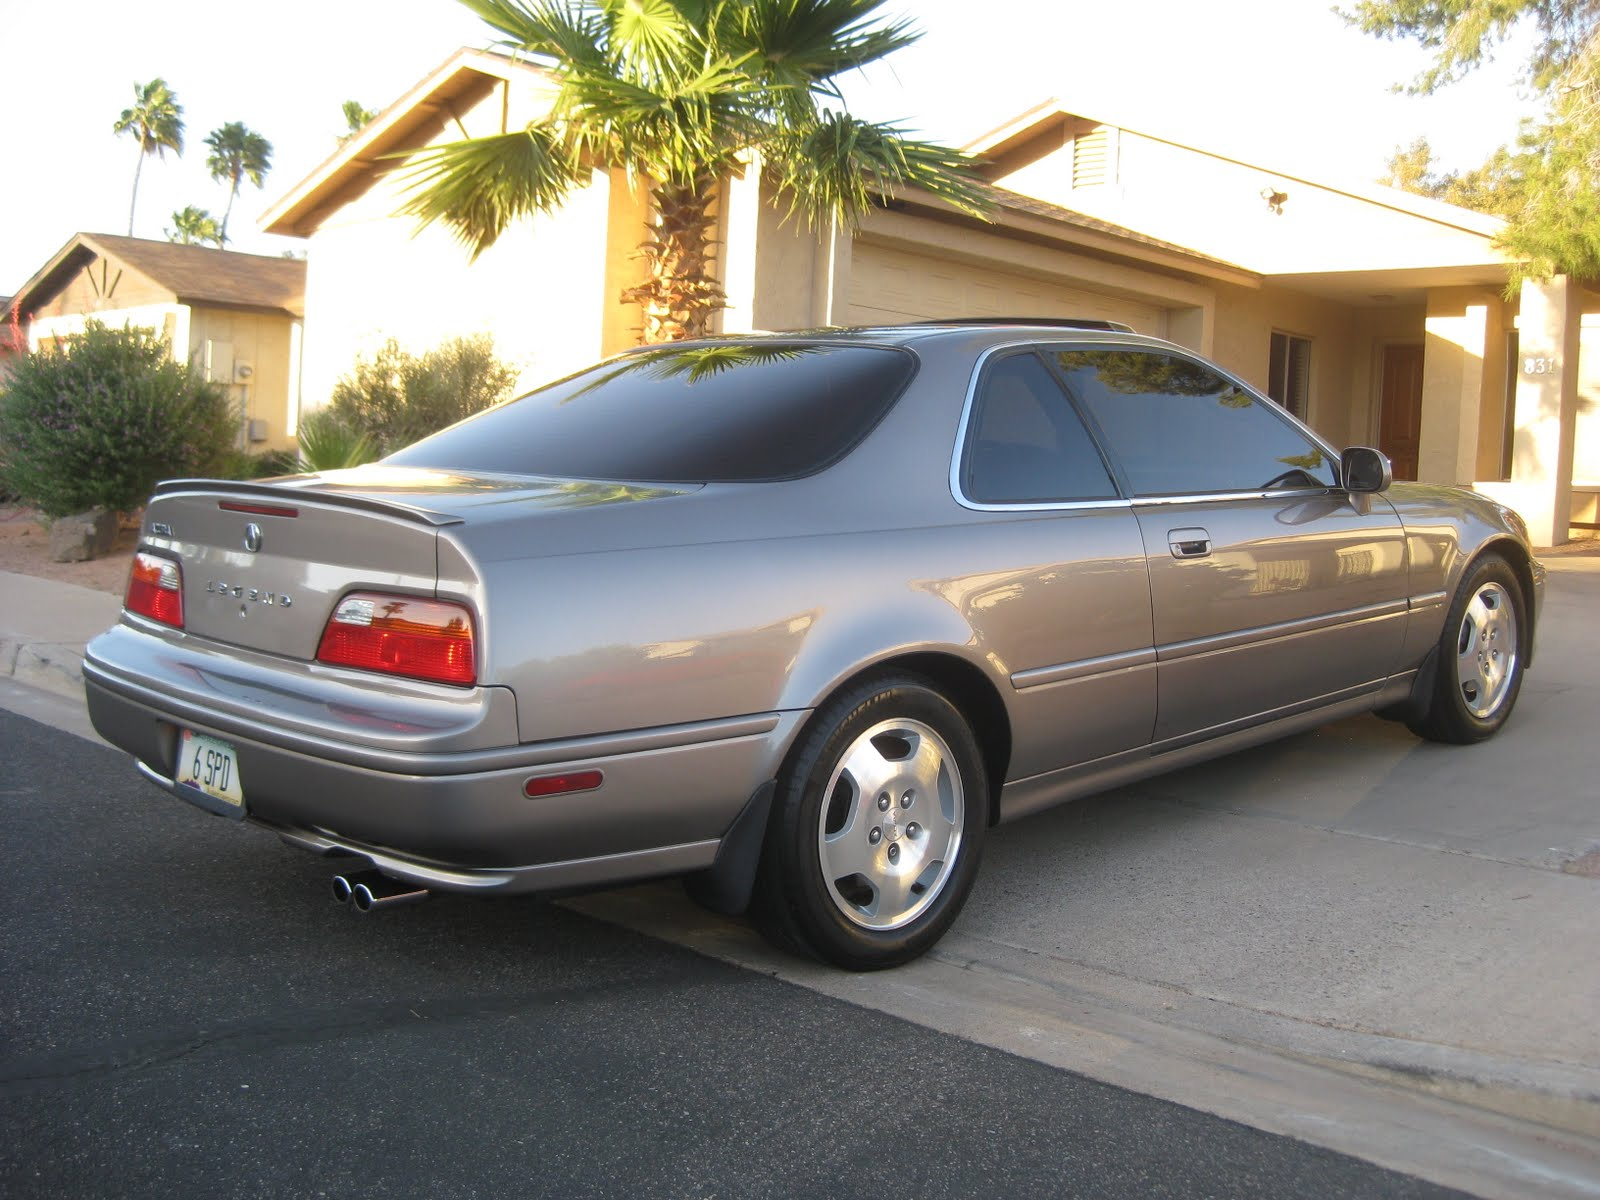 Tyson Hugie's 1994 Acura Legend Coupe rear view